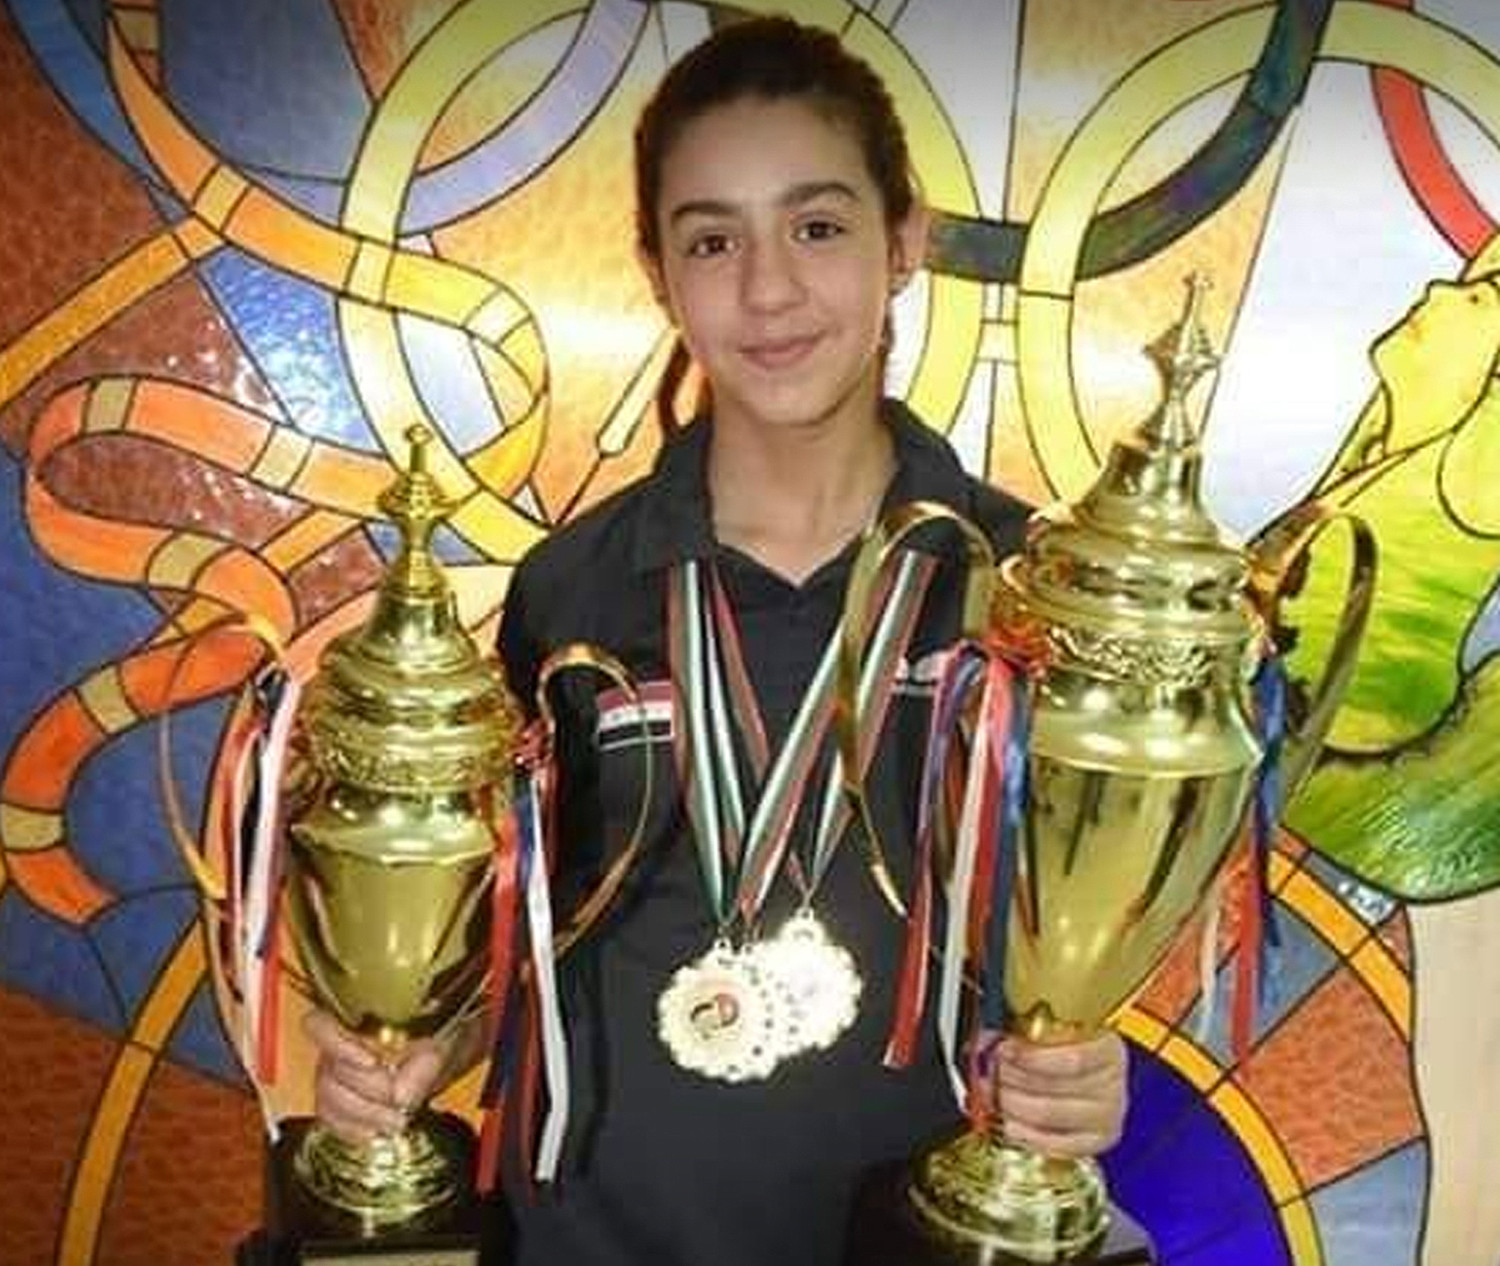 11-Year-Old Syrian Table Tennis Player Hend Zaza Qualifies For Olympics 2